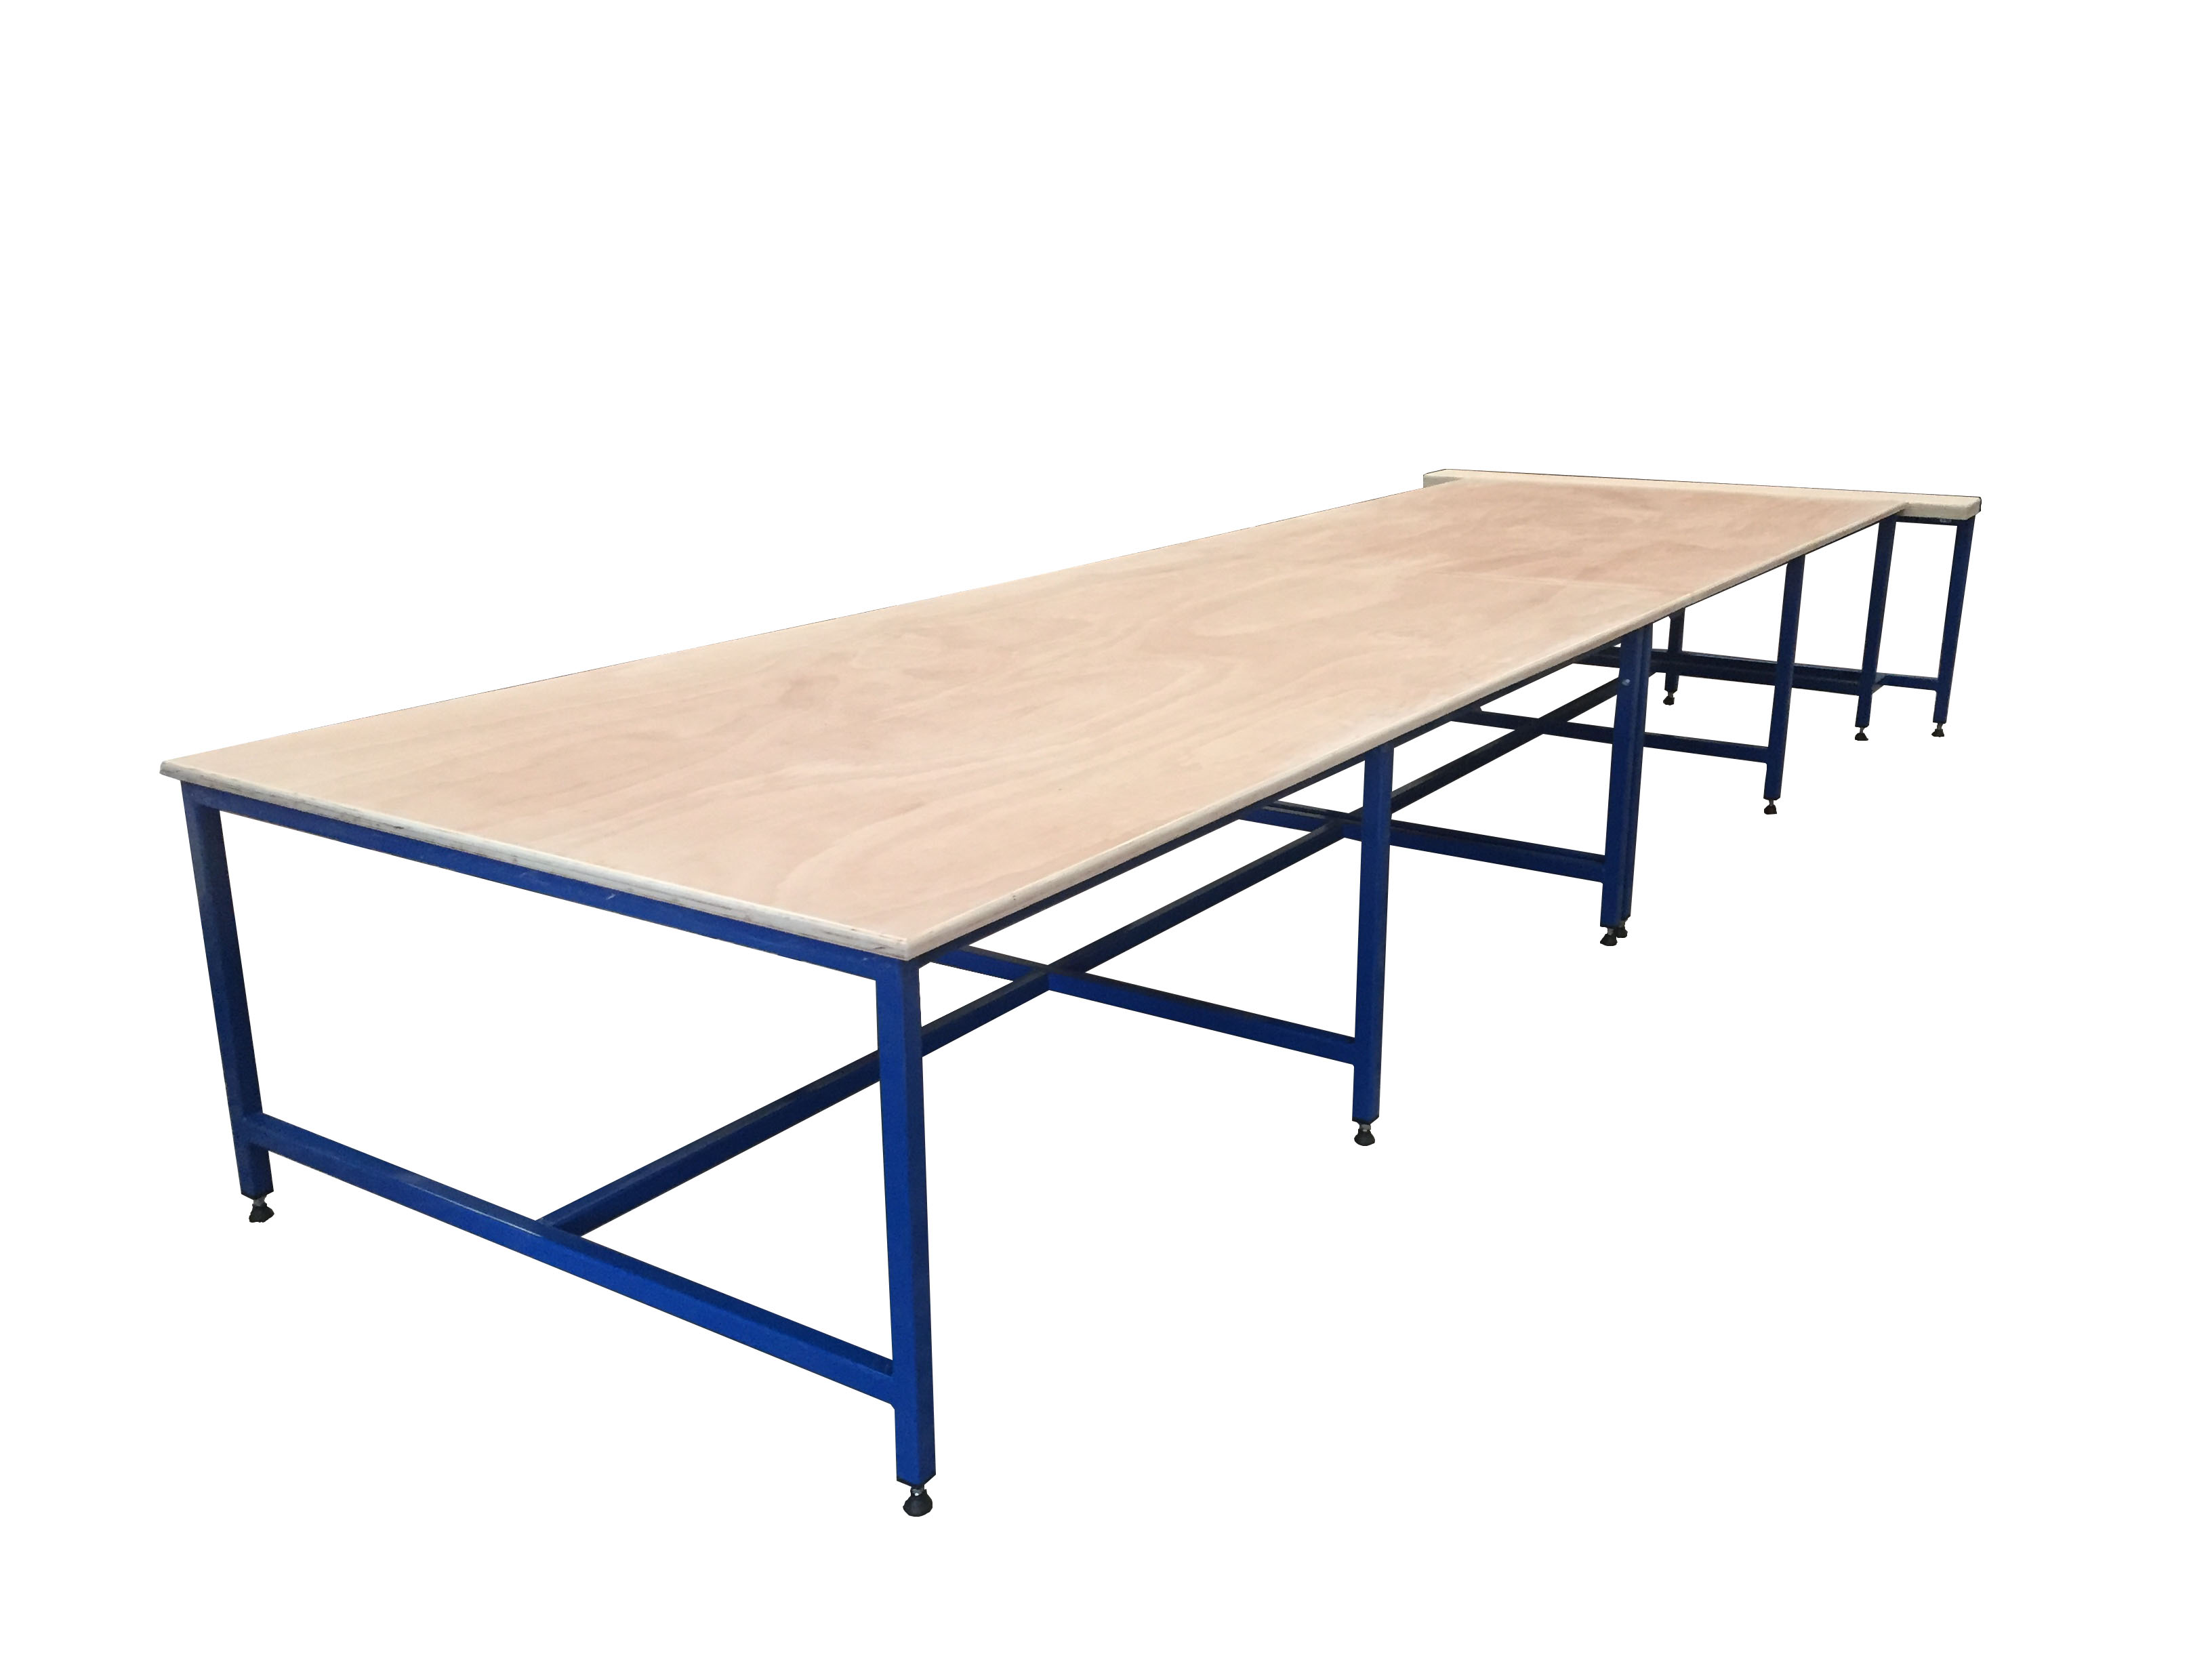 Folding Sewing Cutting Table picture on Folding Sewing Cutting Tablecutting table with Folding Sewing Cutting Table, Folding Table 5b0cea2cb2a1e89b35ef8f9de1c28356